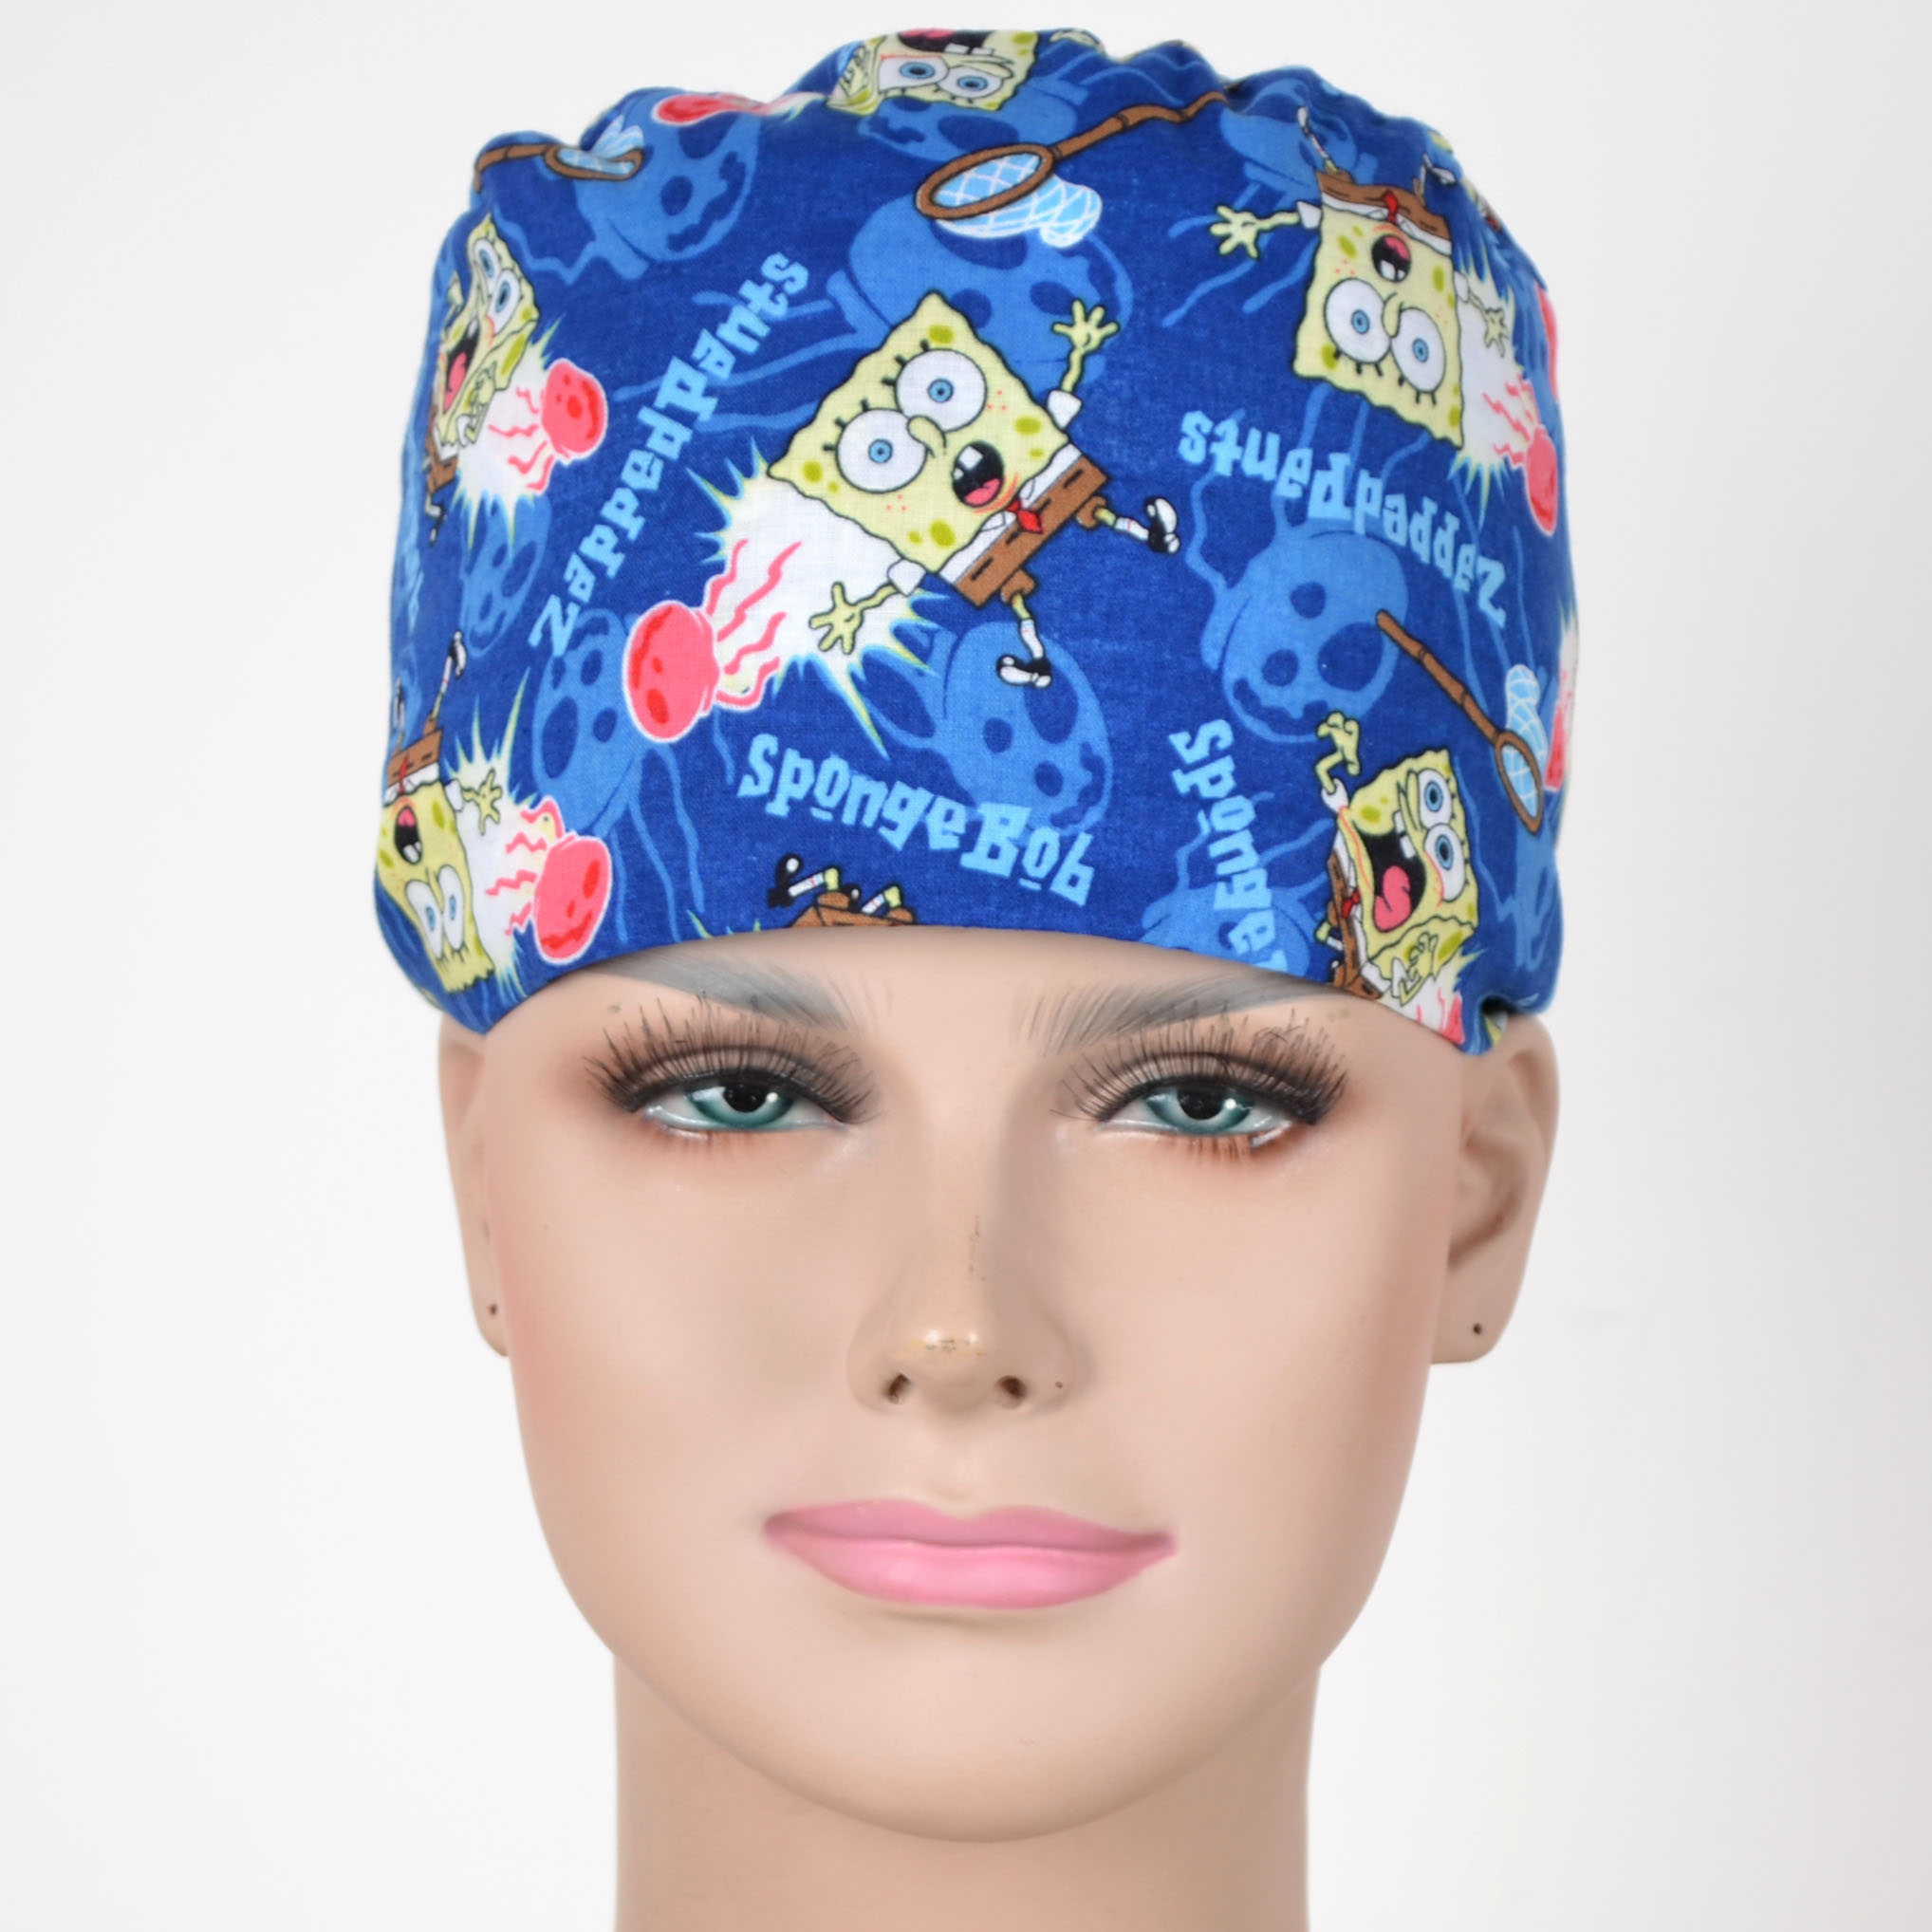 Medical Scrub Caps 100% Cotton  In Blue With Cartoon Prints Surgical Caps With 2 Sizes For Choice